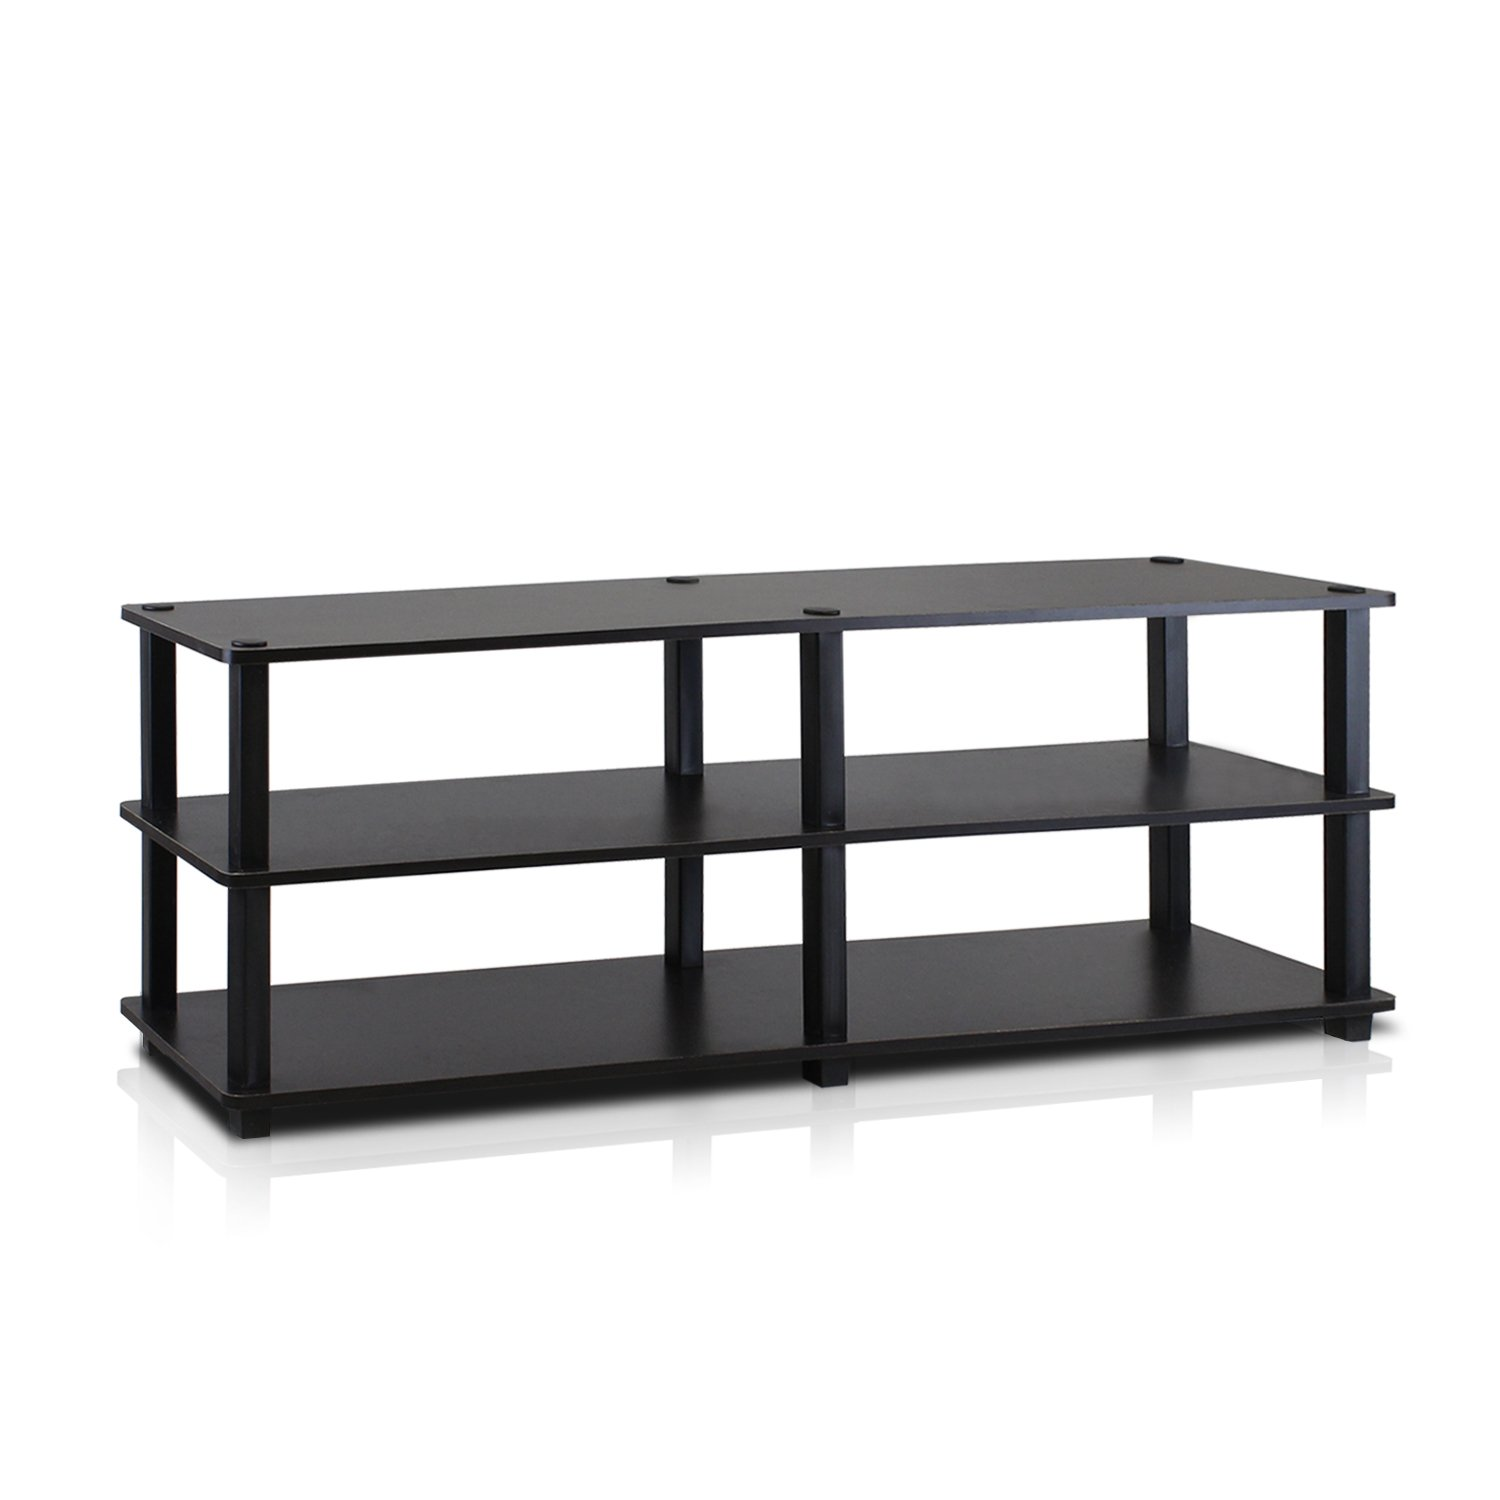 Furinno Turn-S-Tube No Tools 3-Tier Entertainment TV Stands, Espresso/Black by Furinno